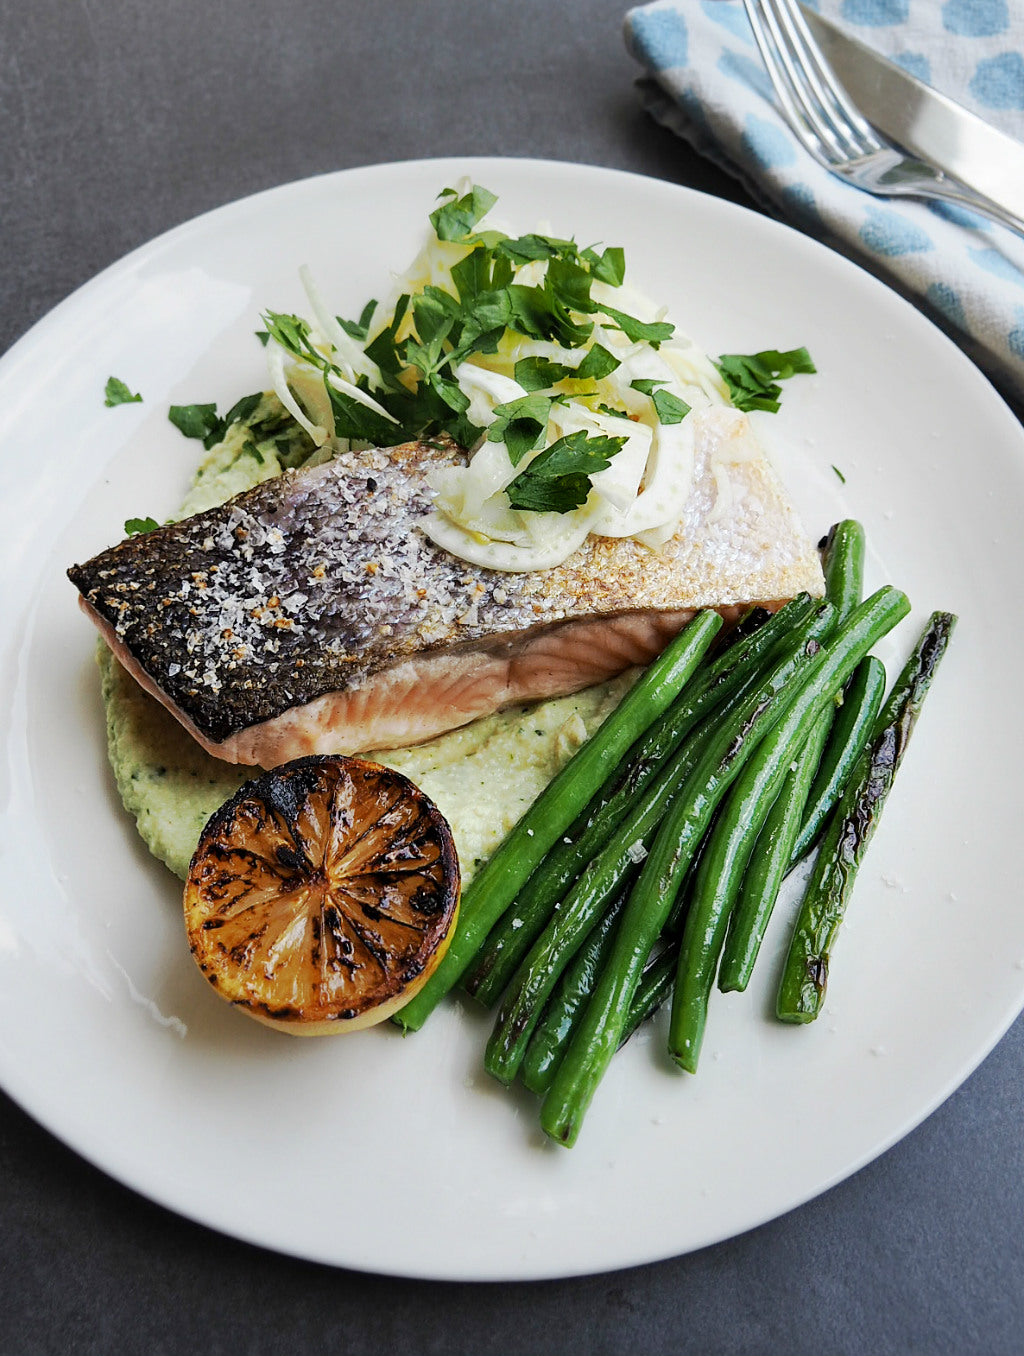 White Bean & Artichoke Puree, with Salmon & Green Beans recipe